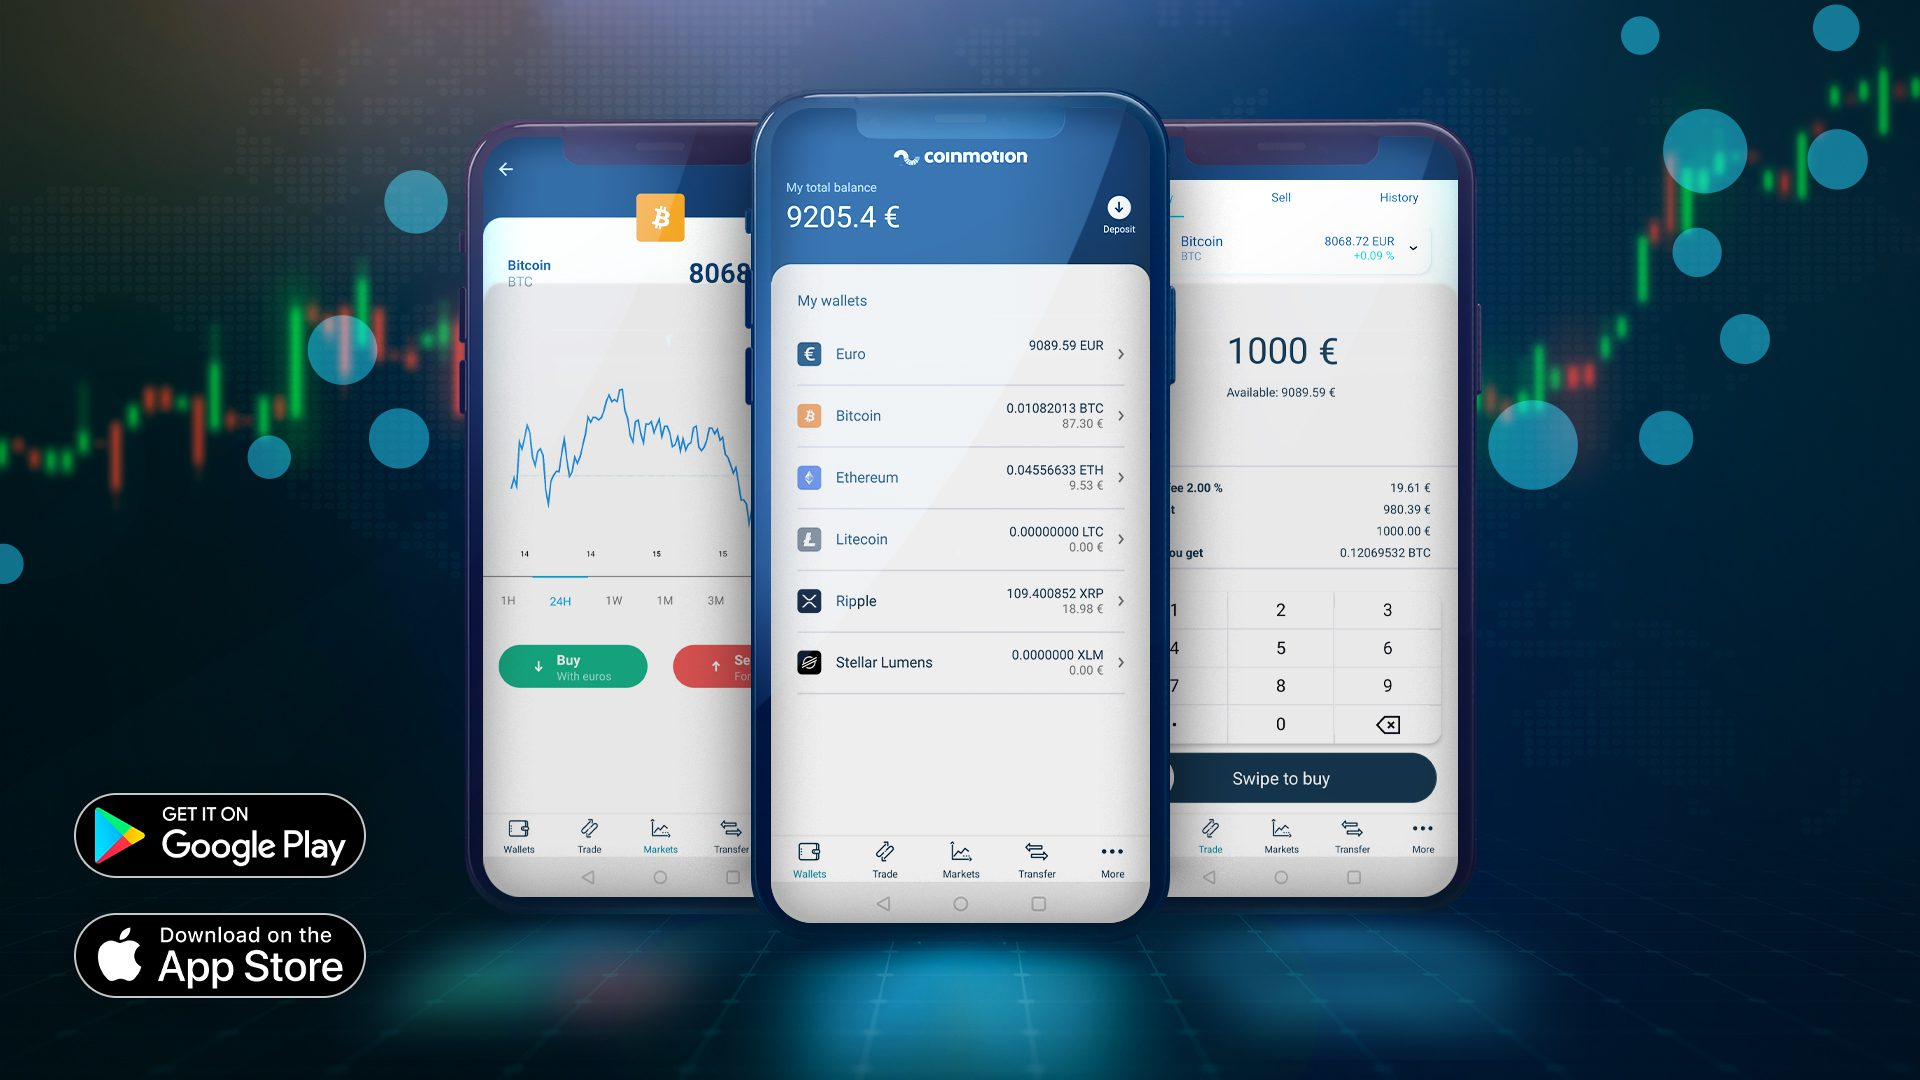 coinmotion_mobile_app_launch